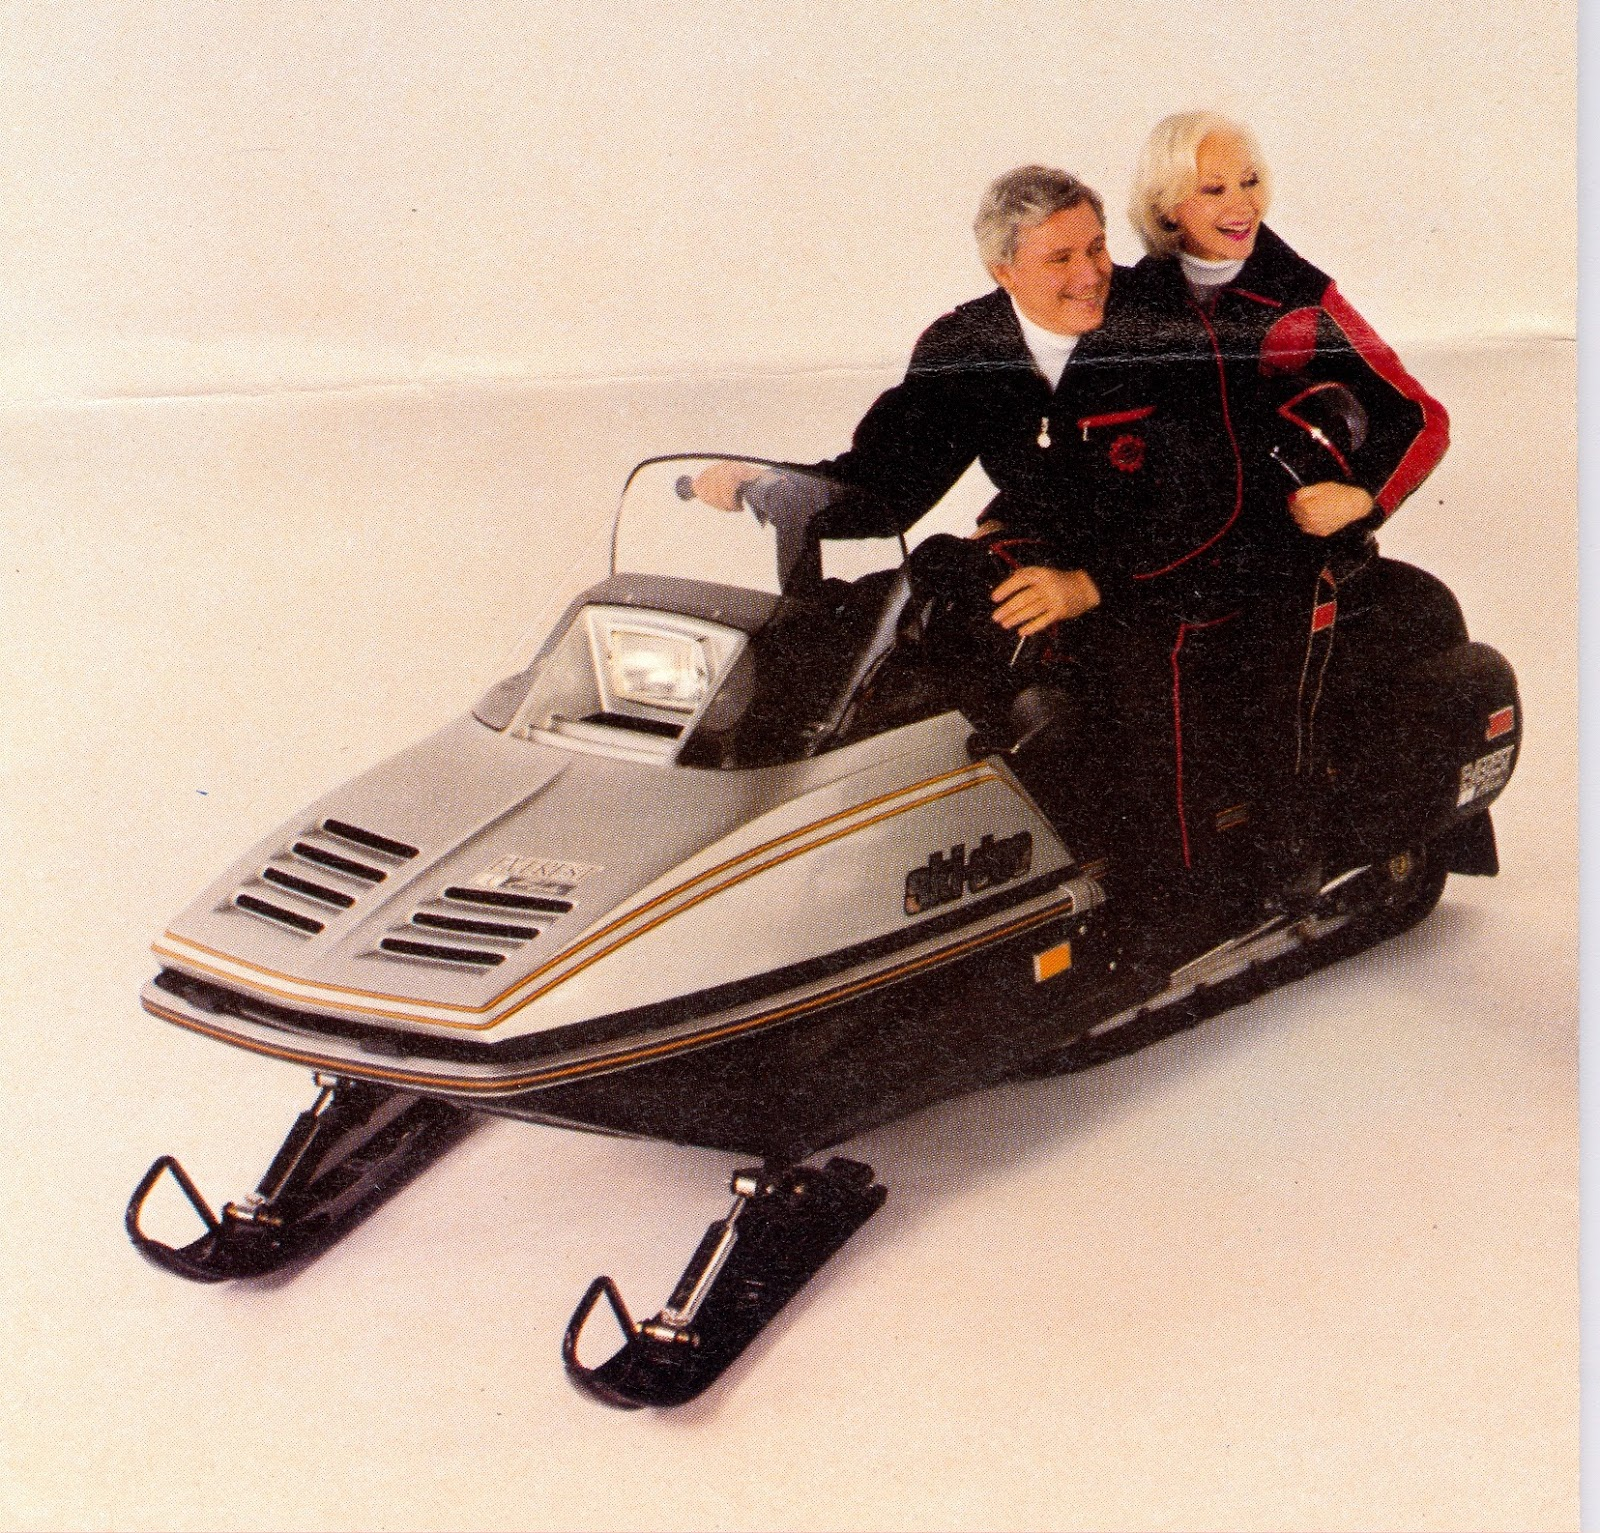 CLASSIC SNOWMOBILES OF THE PAST: 1982 SKI-DOO EVEREST LC